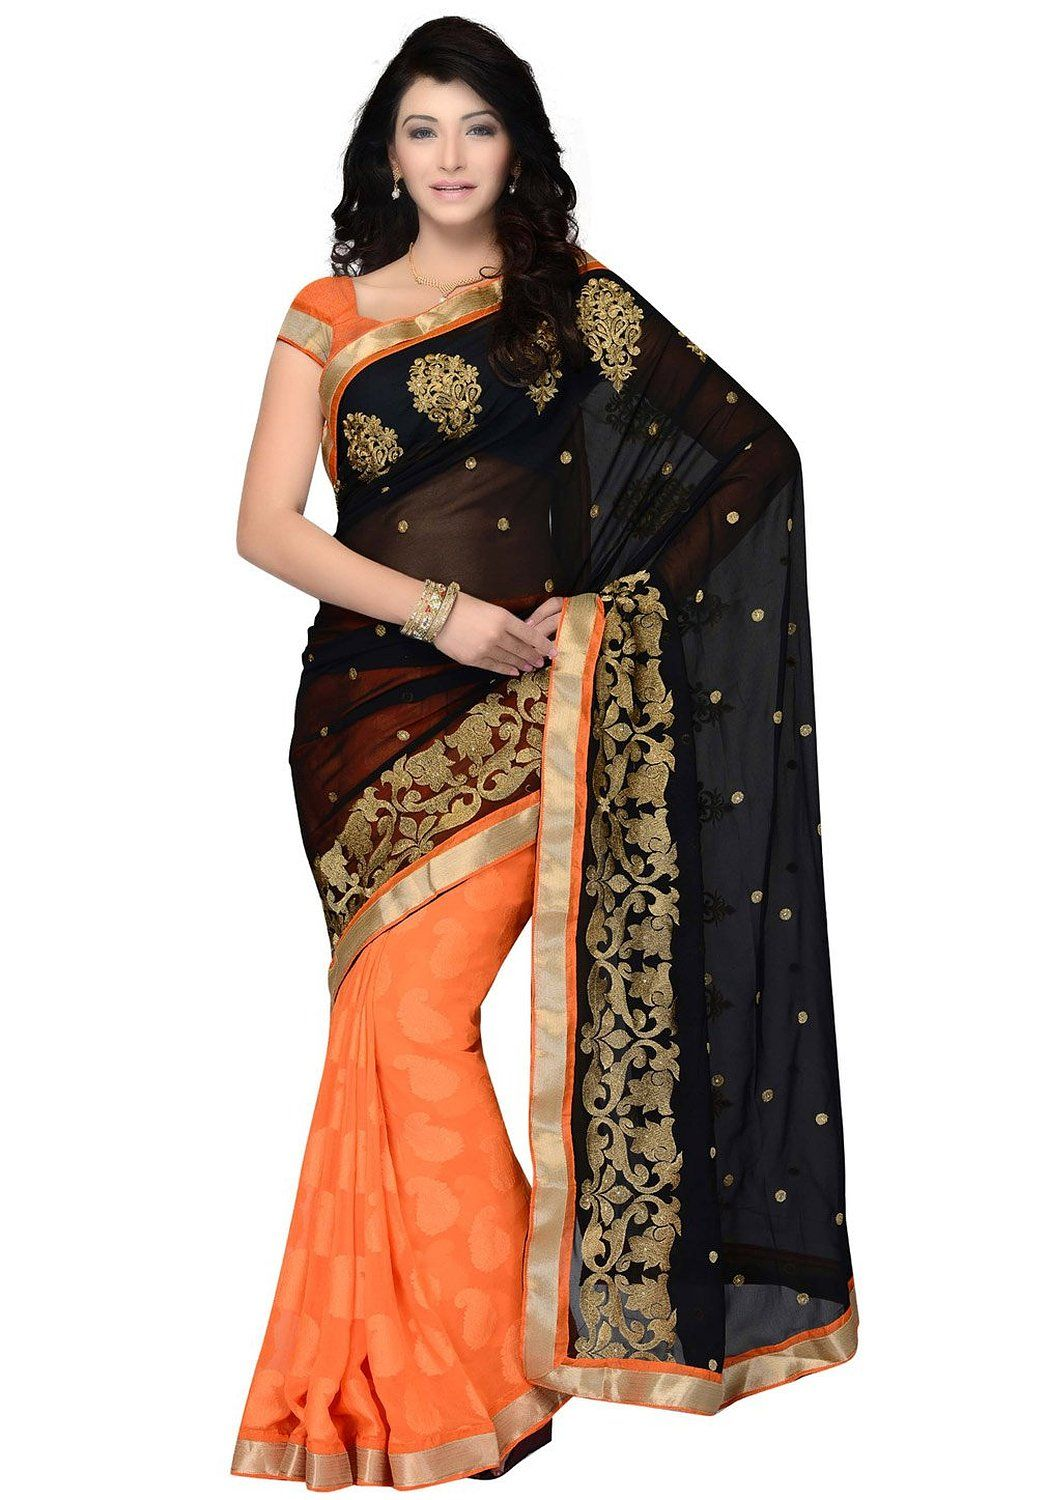 Best dresses to wear to a wedding  Snazzy Wedding Wear Black u Orange Georgette Embroidered Ethnic